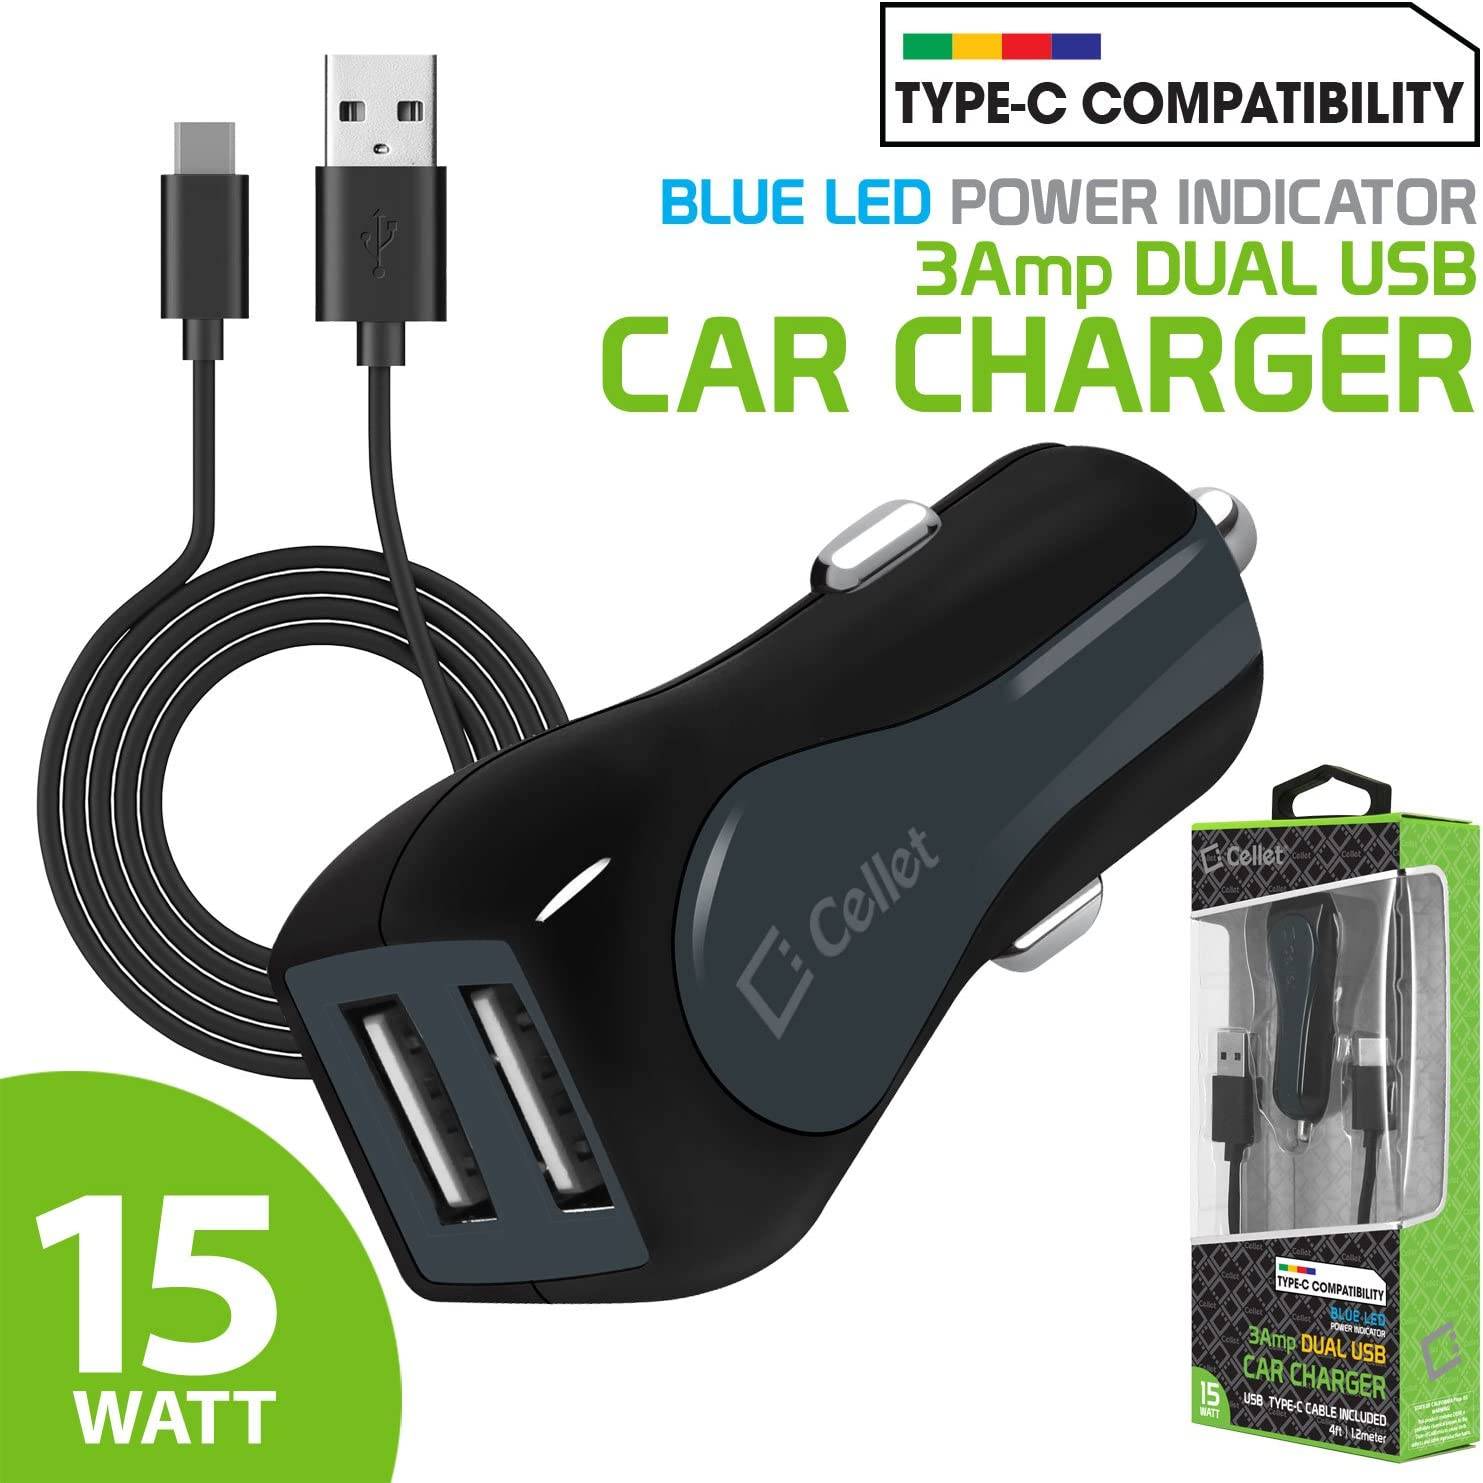 Cellet High Powered 3Amp Fast Charging 15Watt Dual USB Port Car Charger with 4ft Long Type-C Cable Compatible for Asus ZenFone V//Asus ZenFone V Live